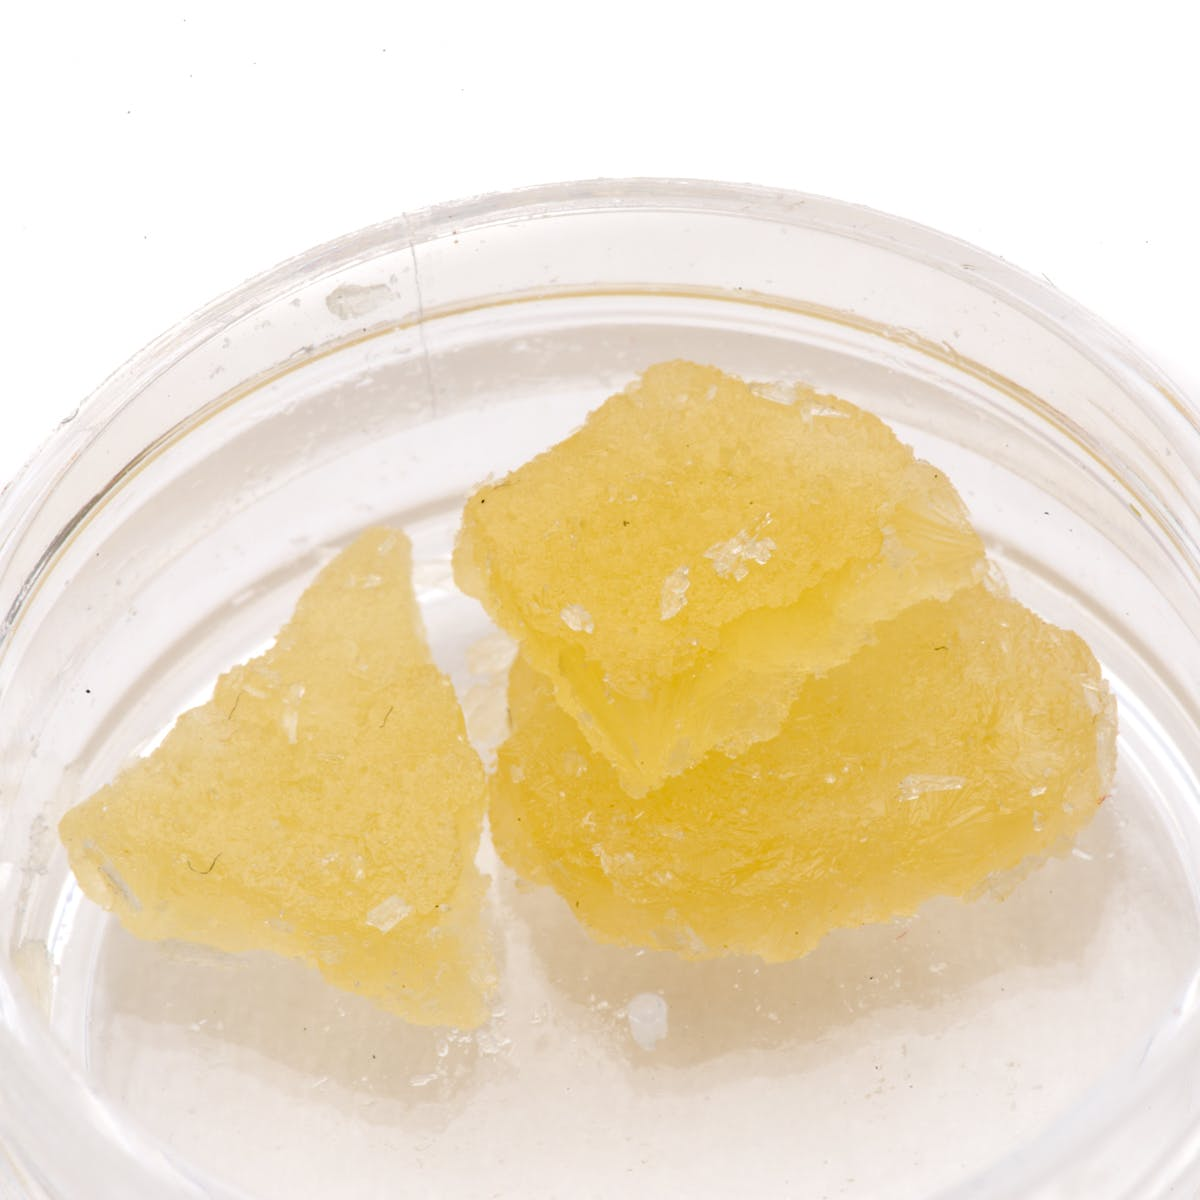 concentrate-acdc-95-25-cbd-shatter